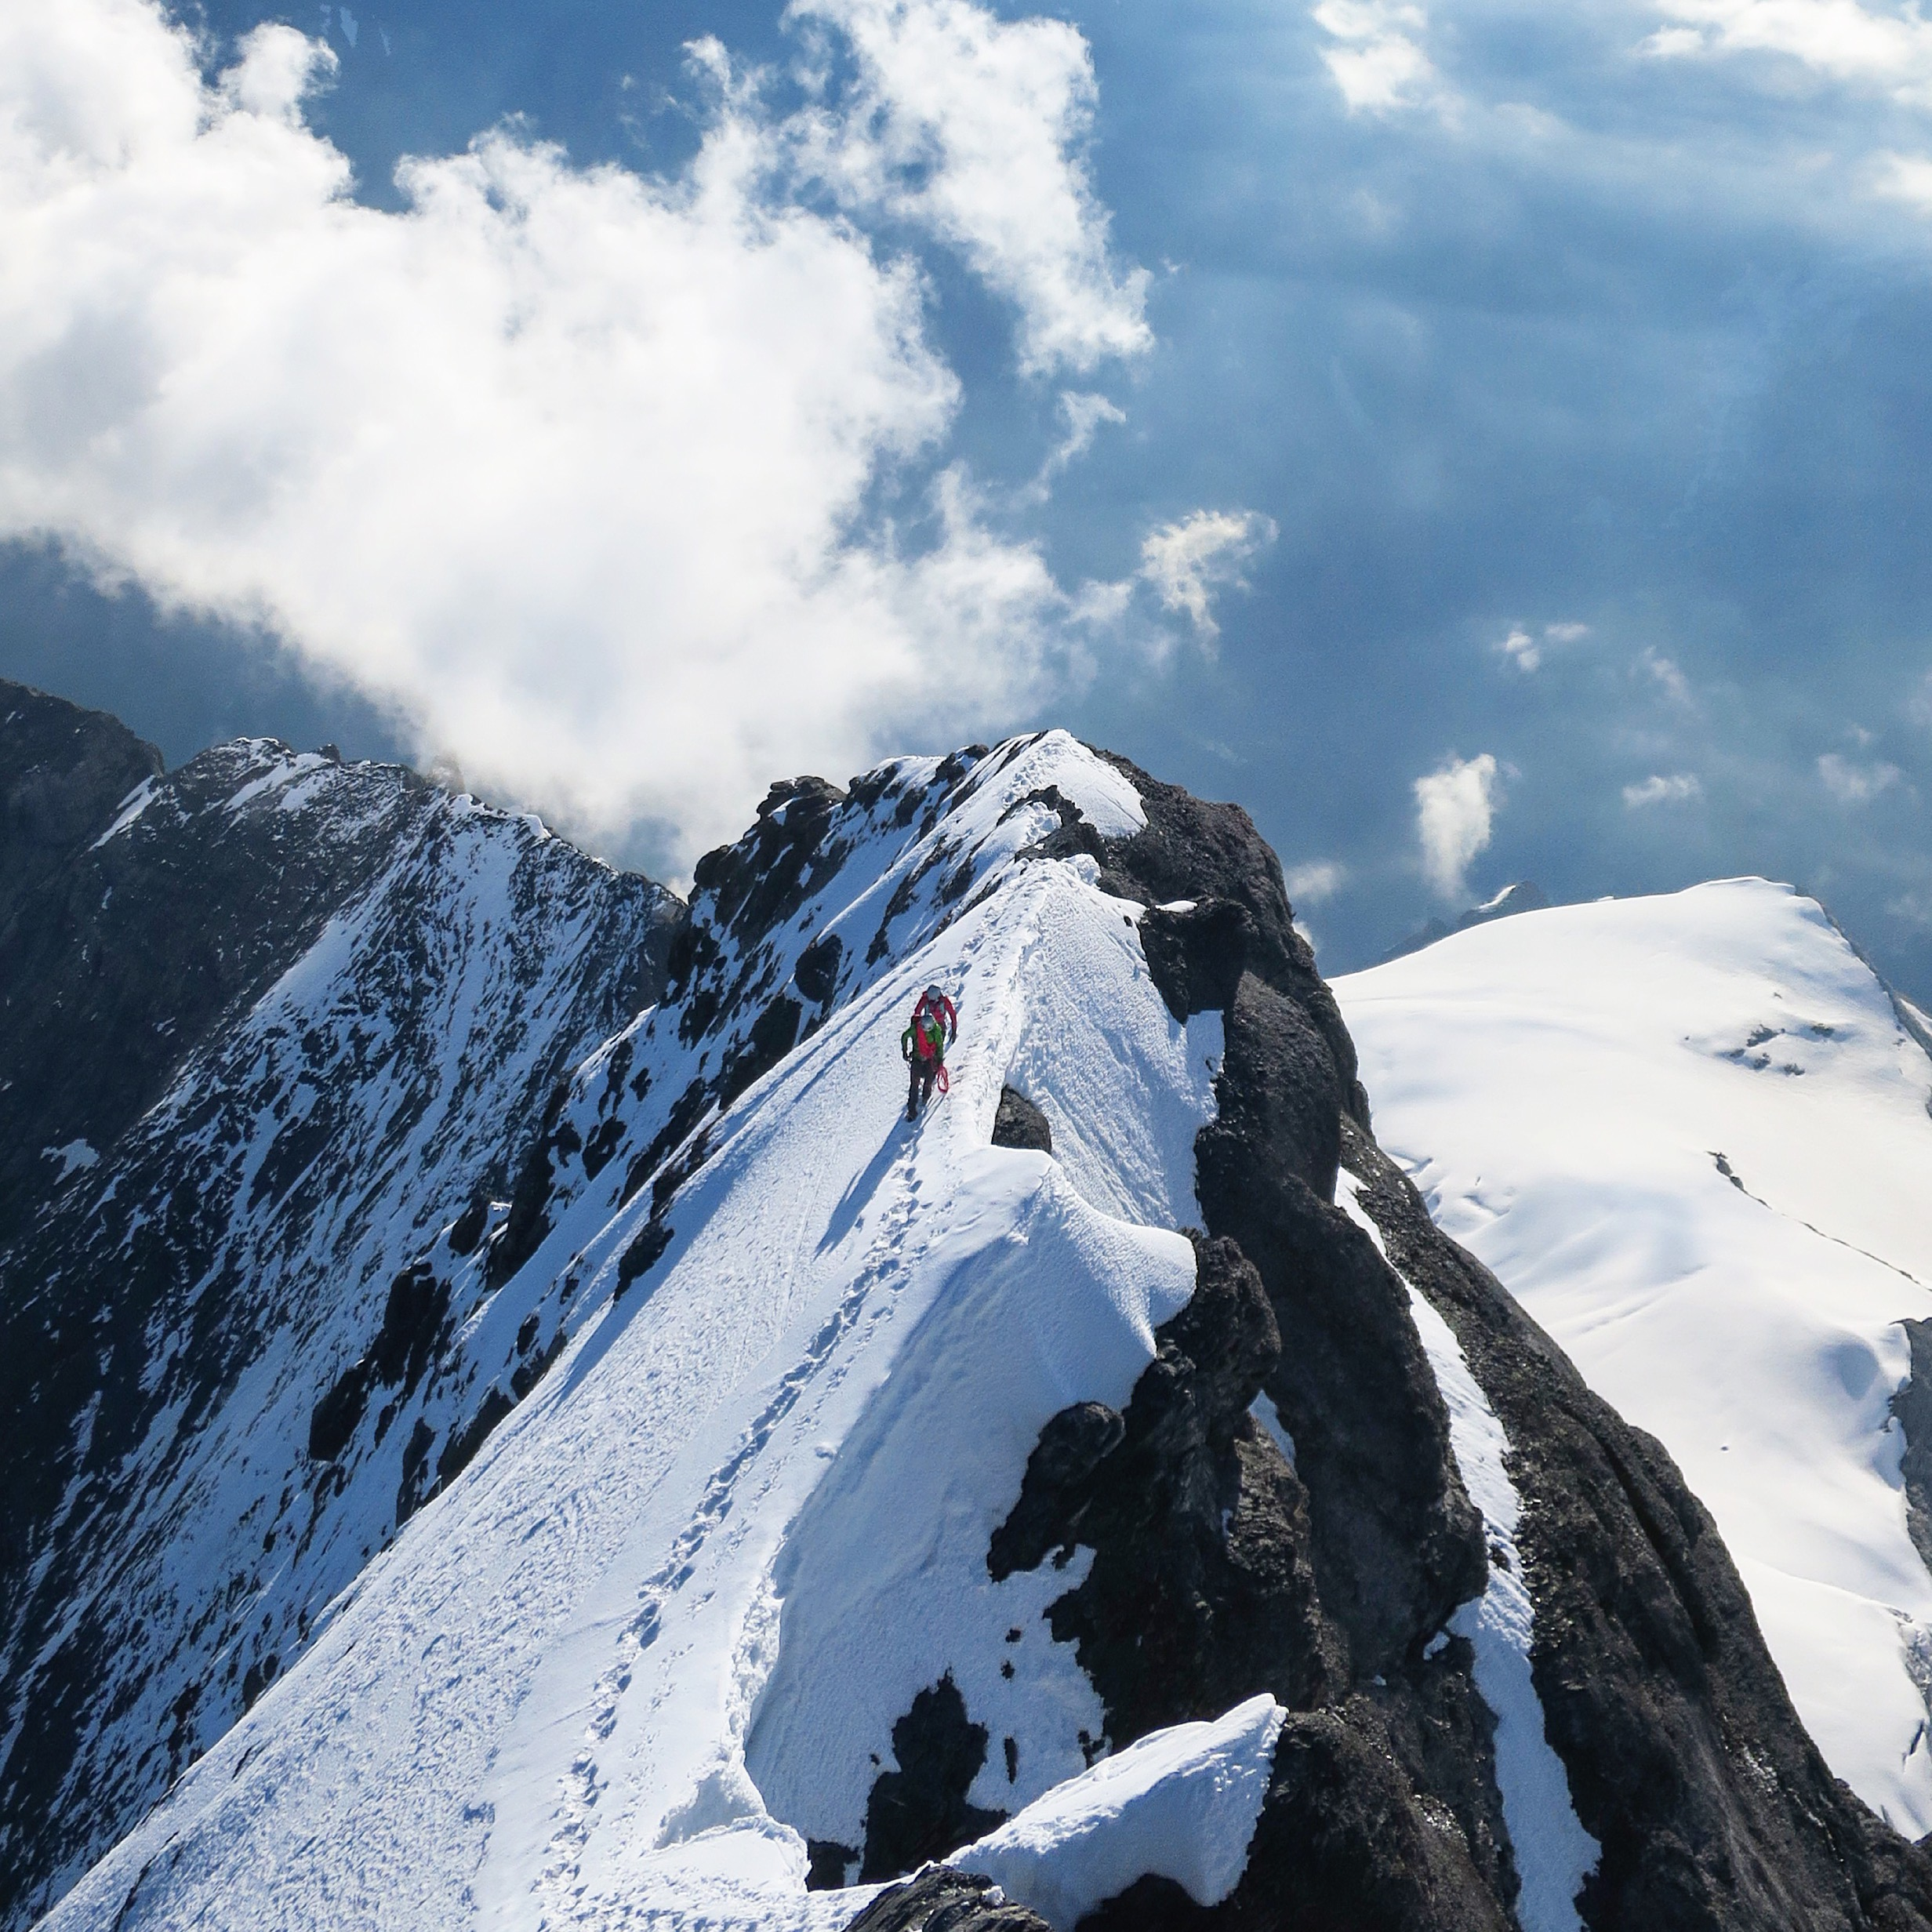 Climbers nearing the summit of the Eiger